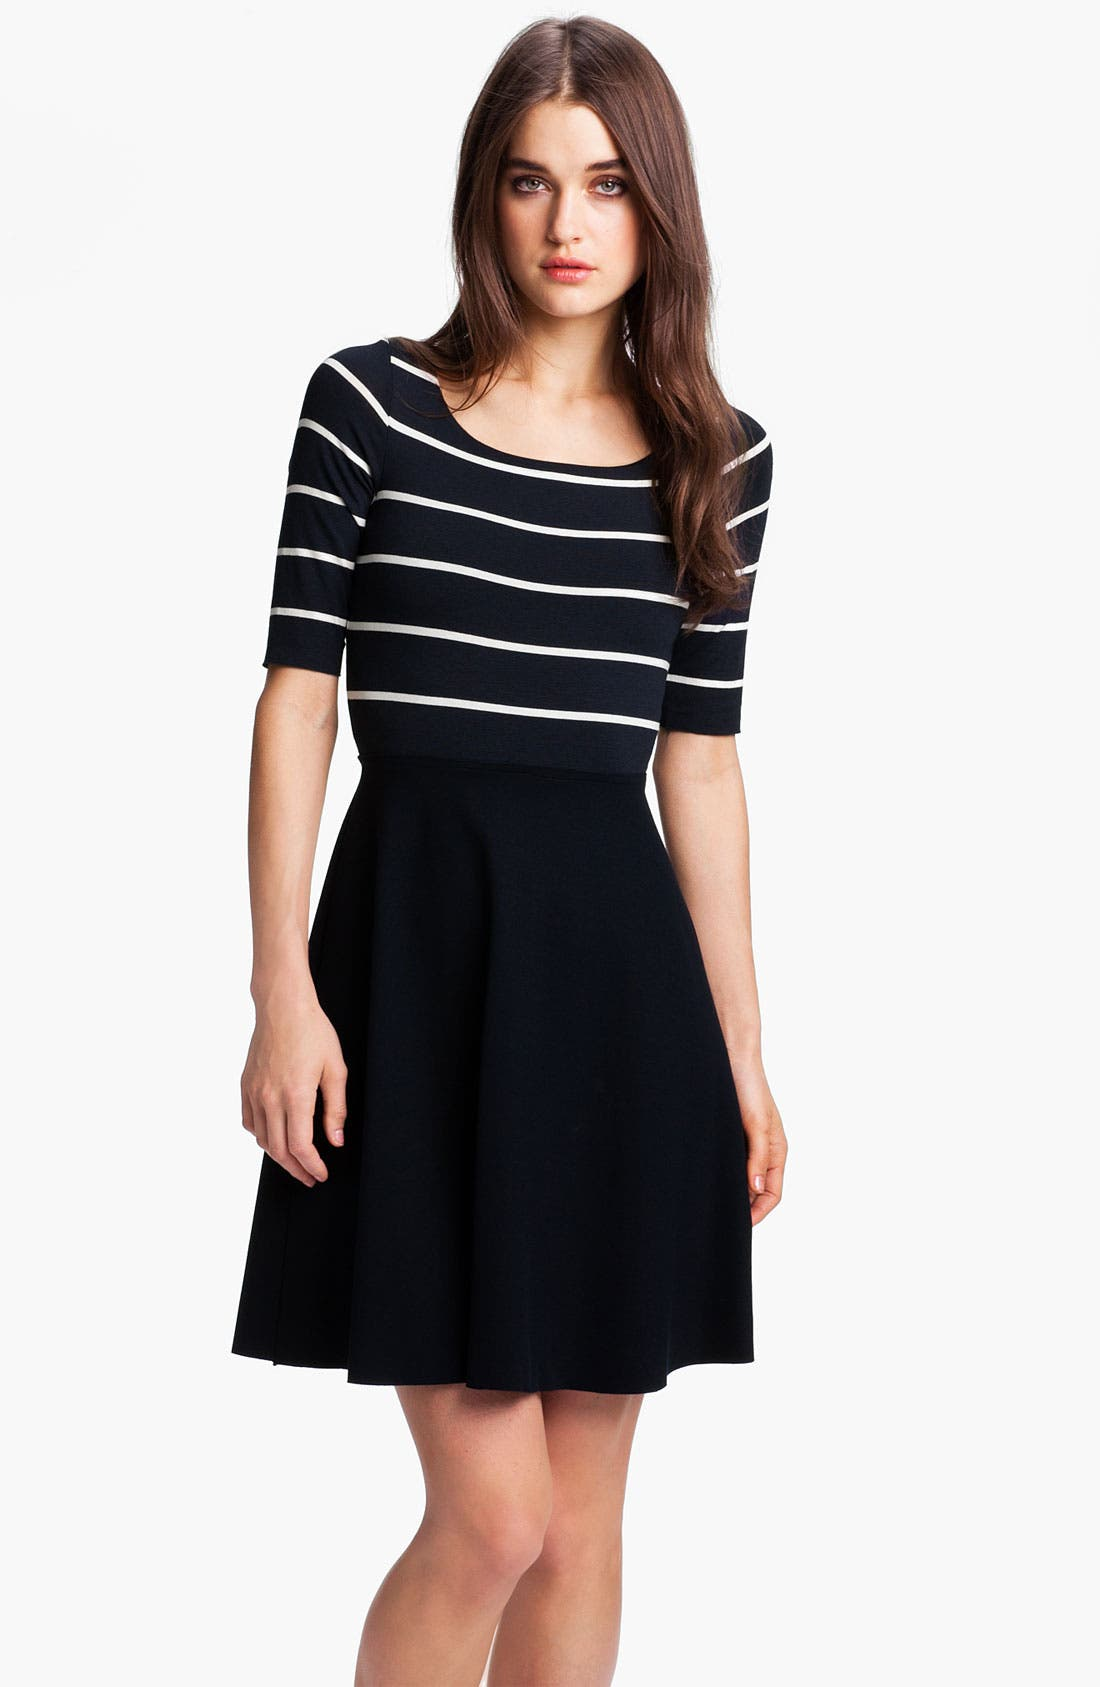 Alternate Image 1 Selected - B44 Dressed by Bailey 44 'Fencing' Stripe Bodice Fit & Flare Dress